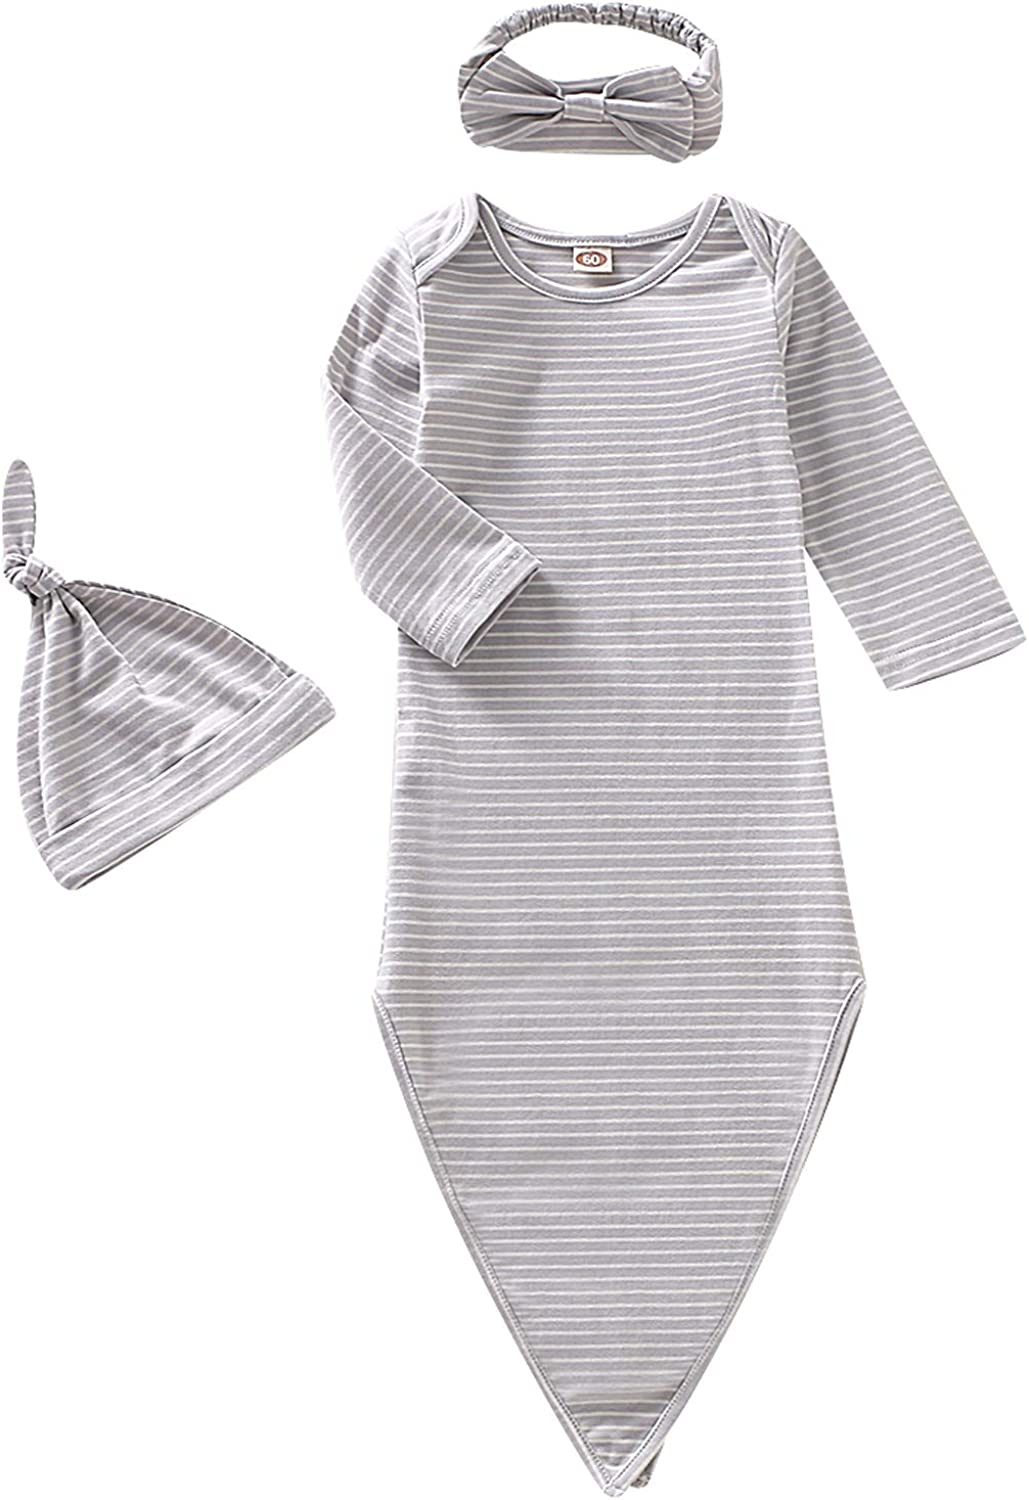 Dramiposs Baby Gowns Newborn Gender Neutral Knotted Sleepers Baby Coming Home Outfit